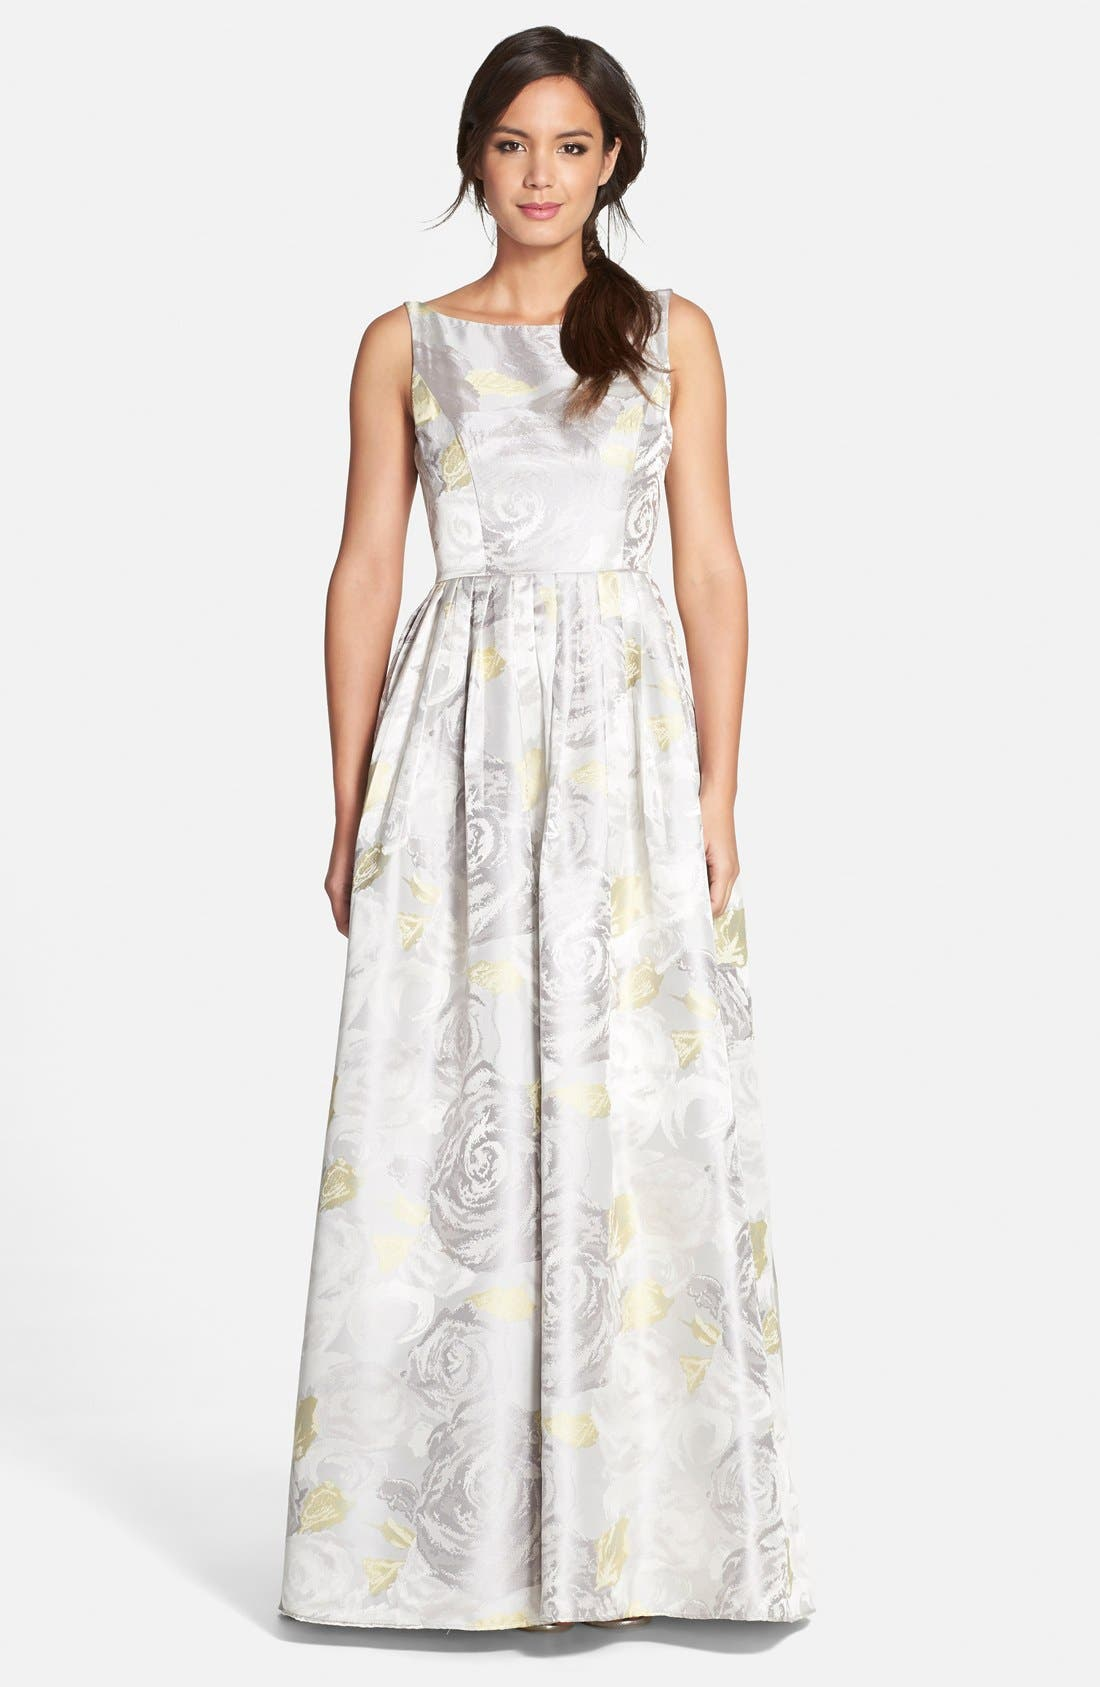 Alternate Image 1 Selected - Adrianna Papell Floral Print Jacquard Ballgown